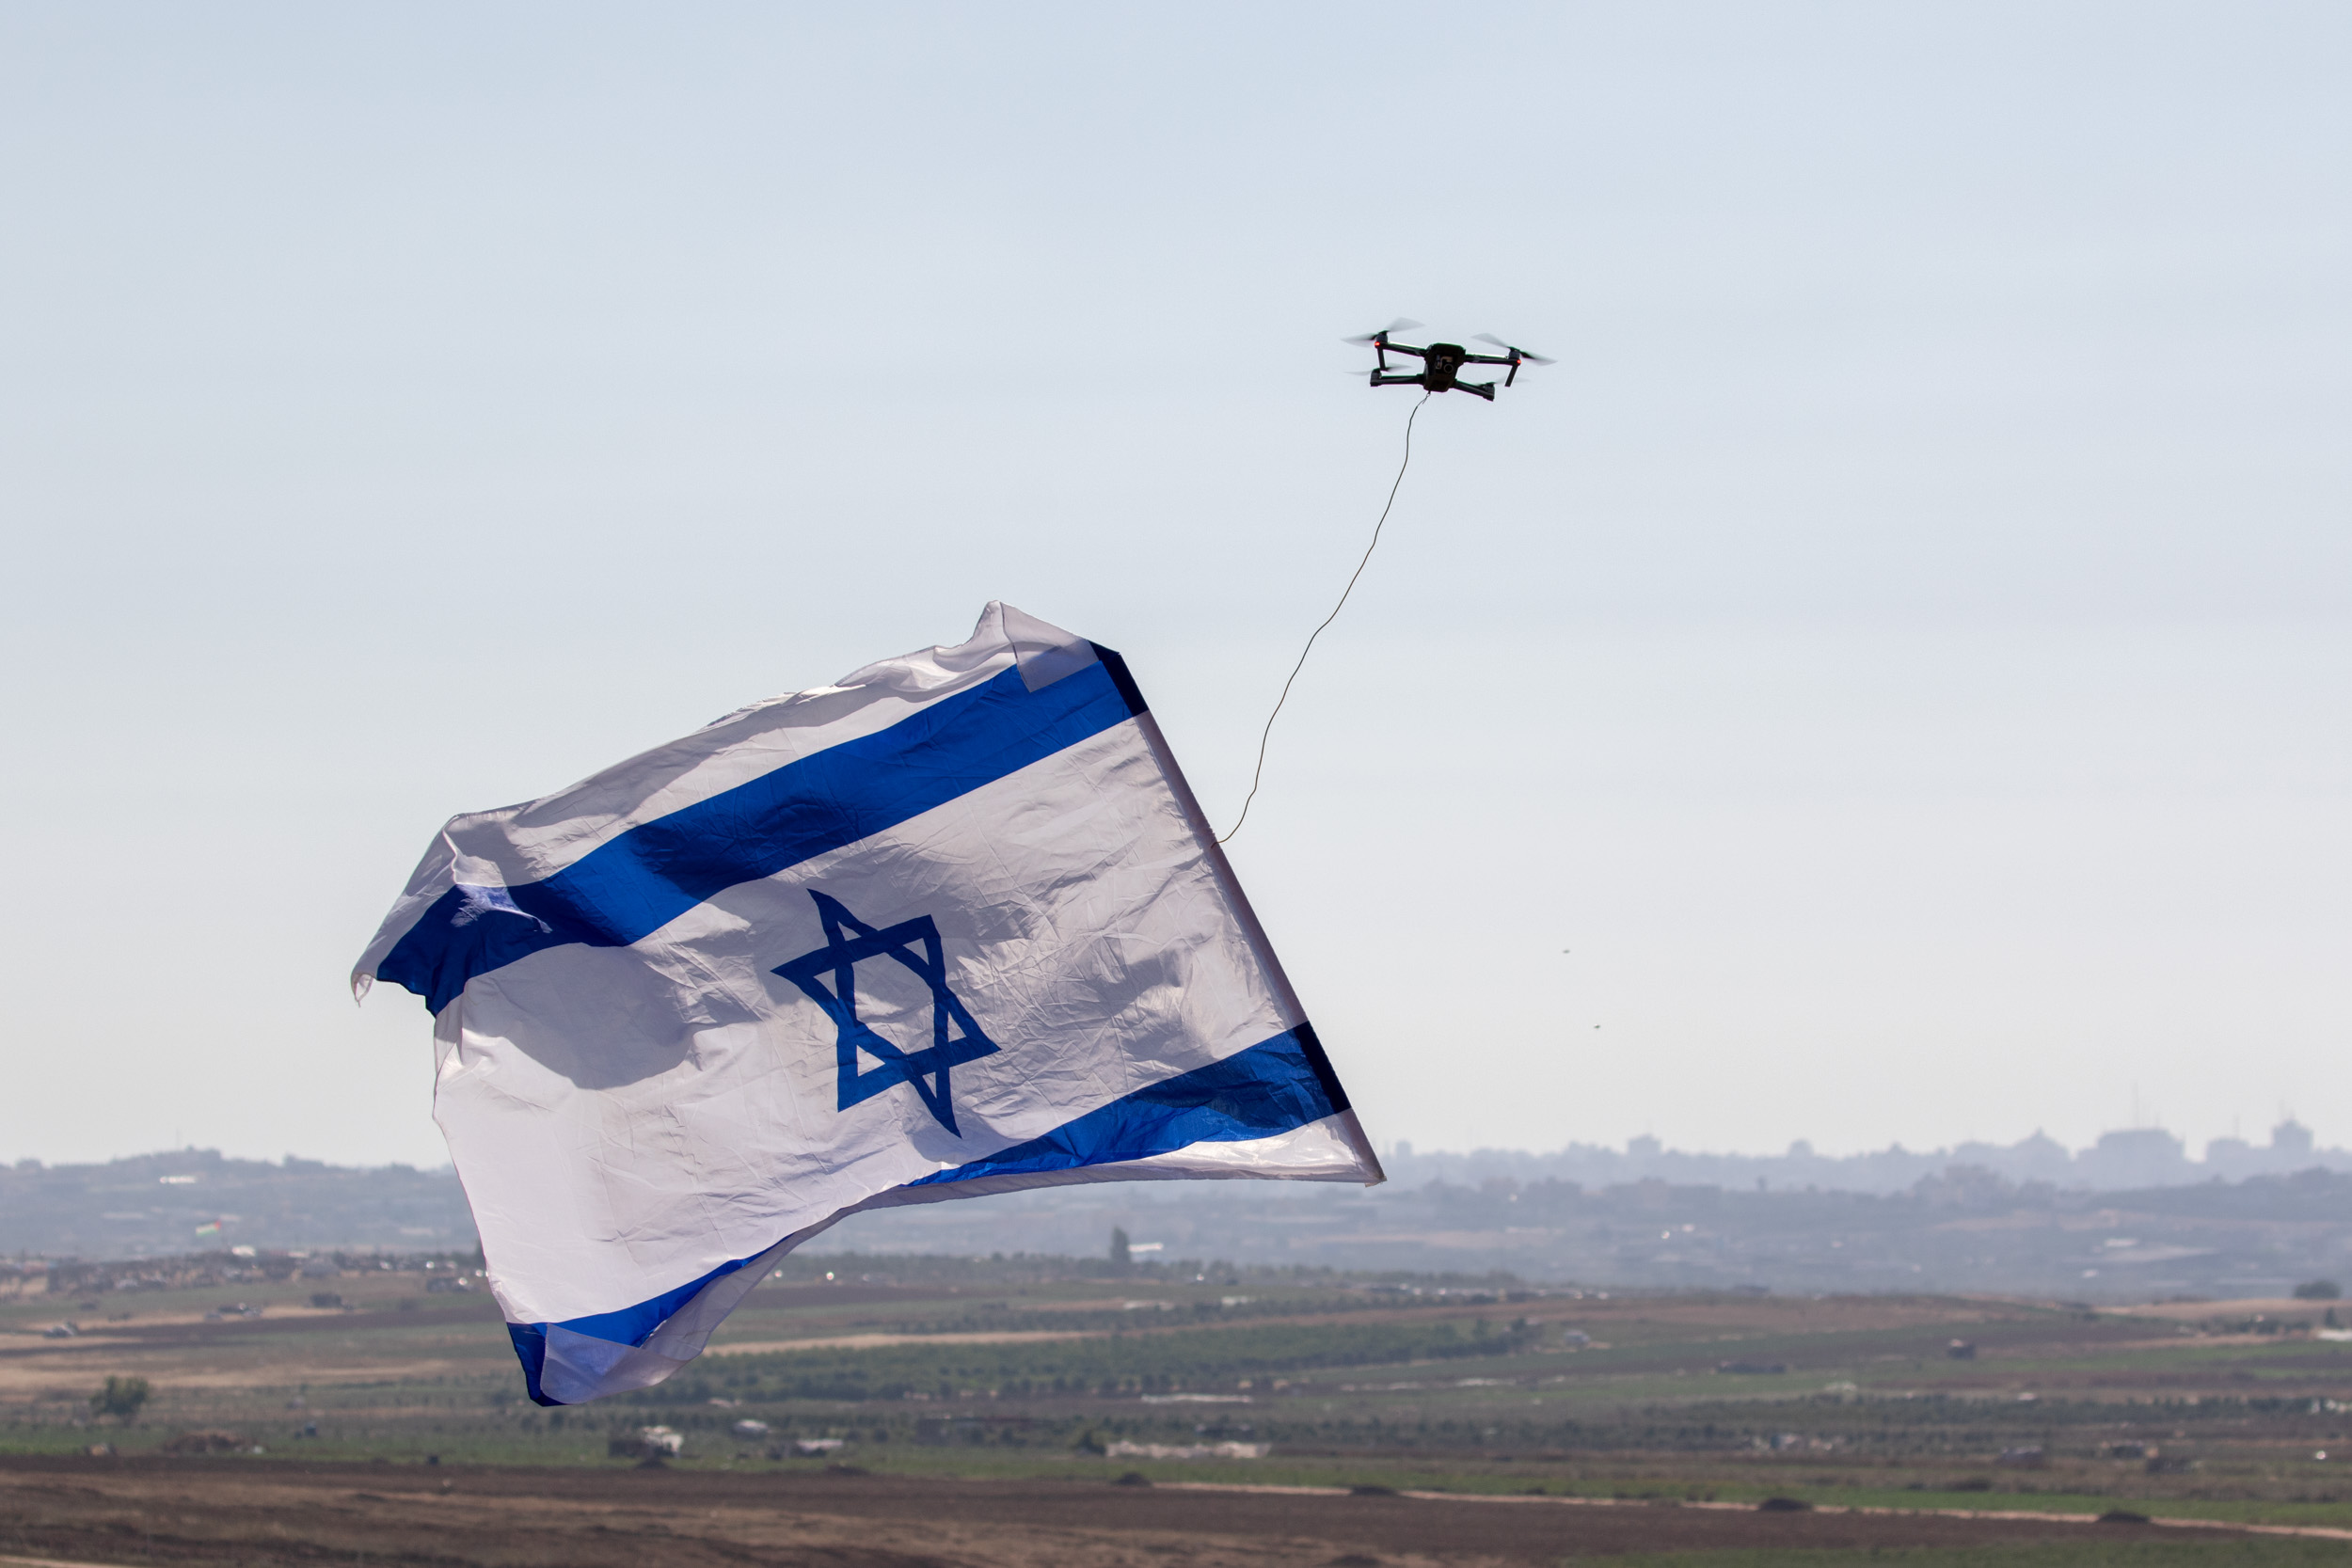 Northern Gaza Border, June 2018 - Small drone carries the israeli flag, sent by Israelis leaving near the gaza border